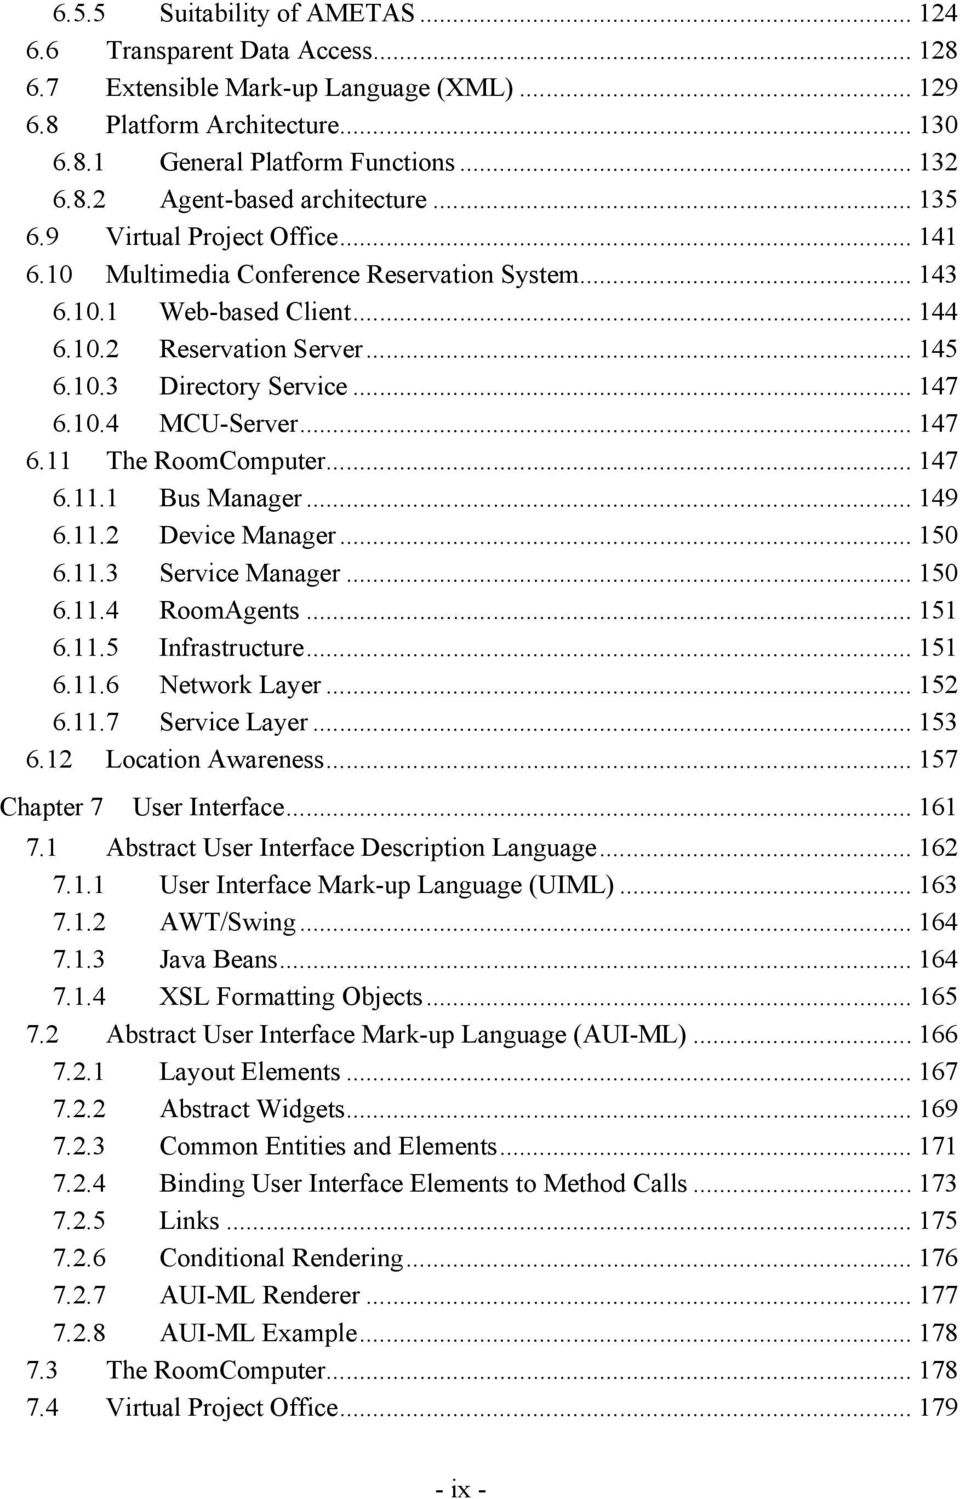 10.3 Directory Service... 147 6.10.4 MCU- Server...... 147 6.11 The RoomComputer...... 147 6. 11.1 Bus Manager...... 149 6.11.2 Device Manager...... 150 6.11.3 Service Manager...... 150 6.11.4 RoomAgents.